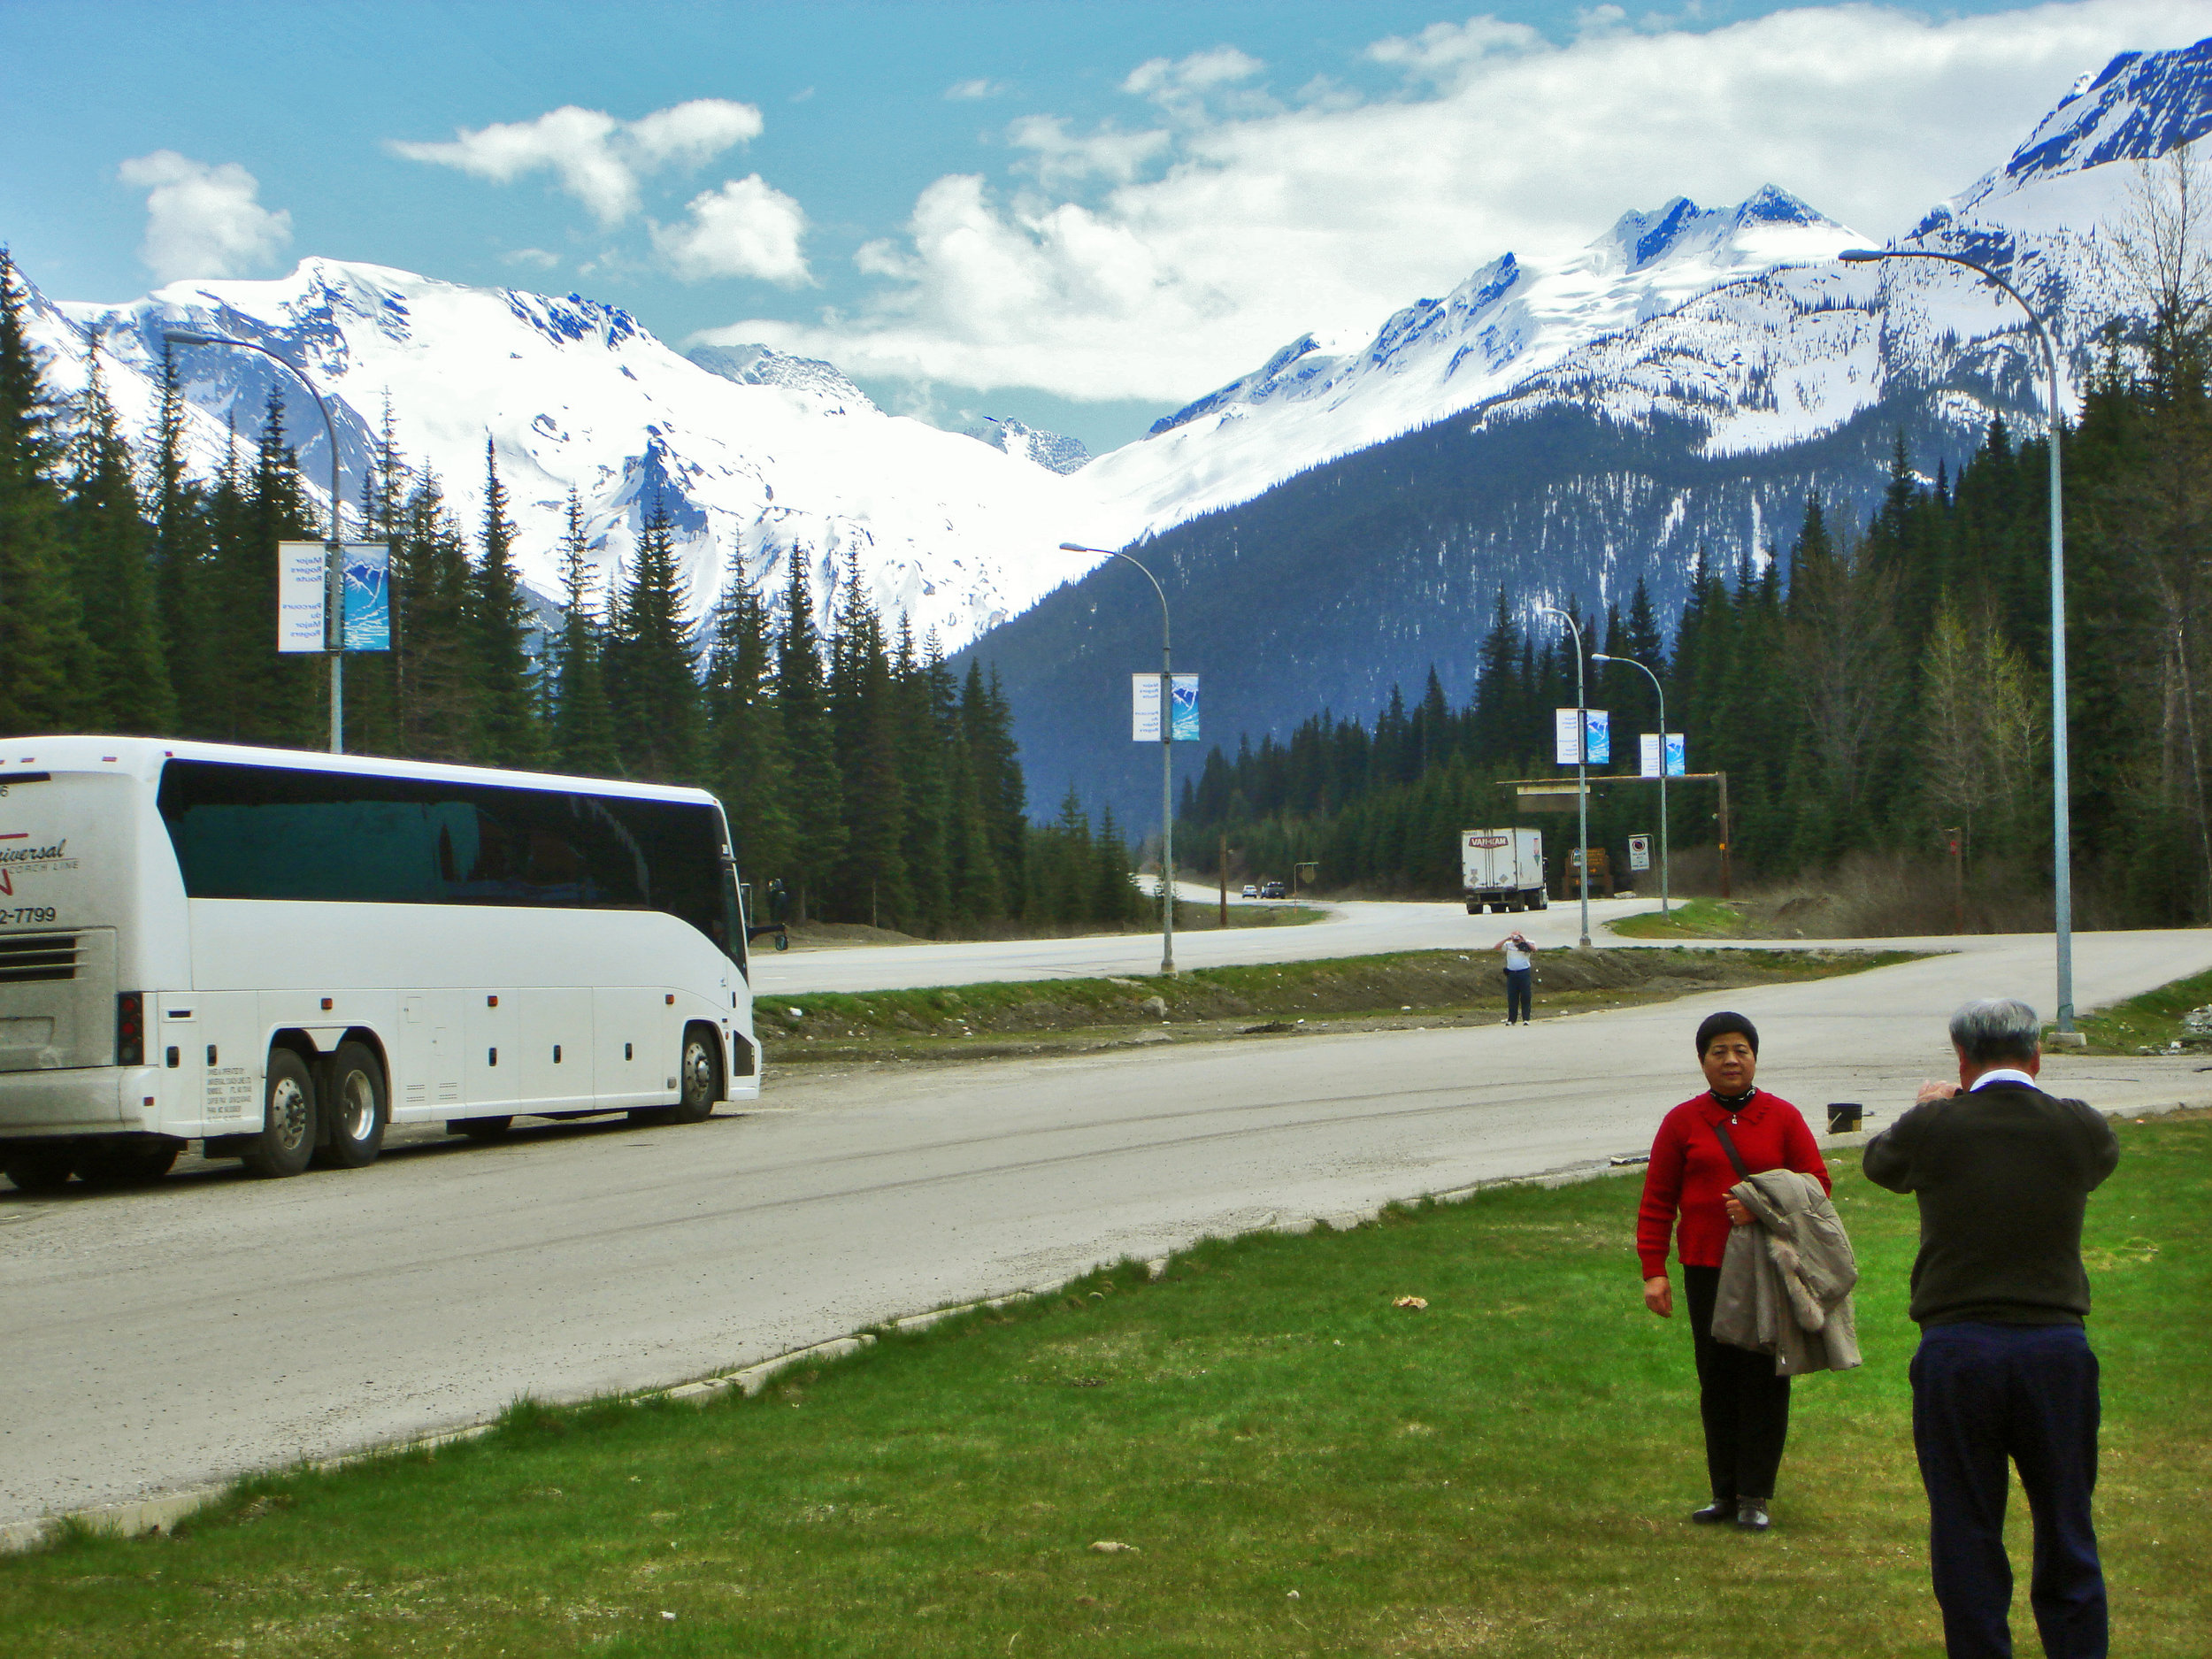 Canada & Alaska  -  I once viewed Canada & Alaska from busses, trains and a large ship with a group of elderly Australians enjoying a holiday.